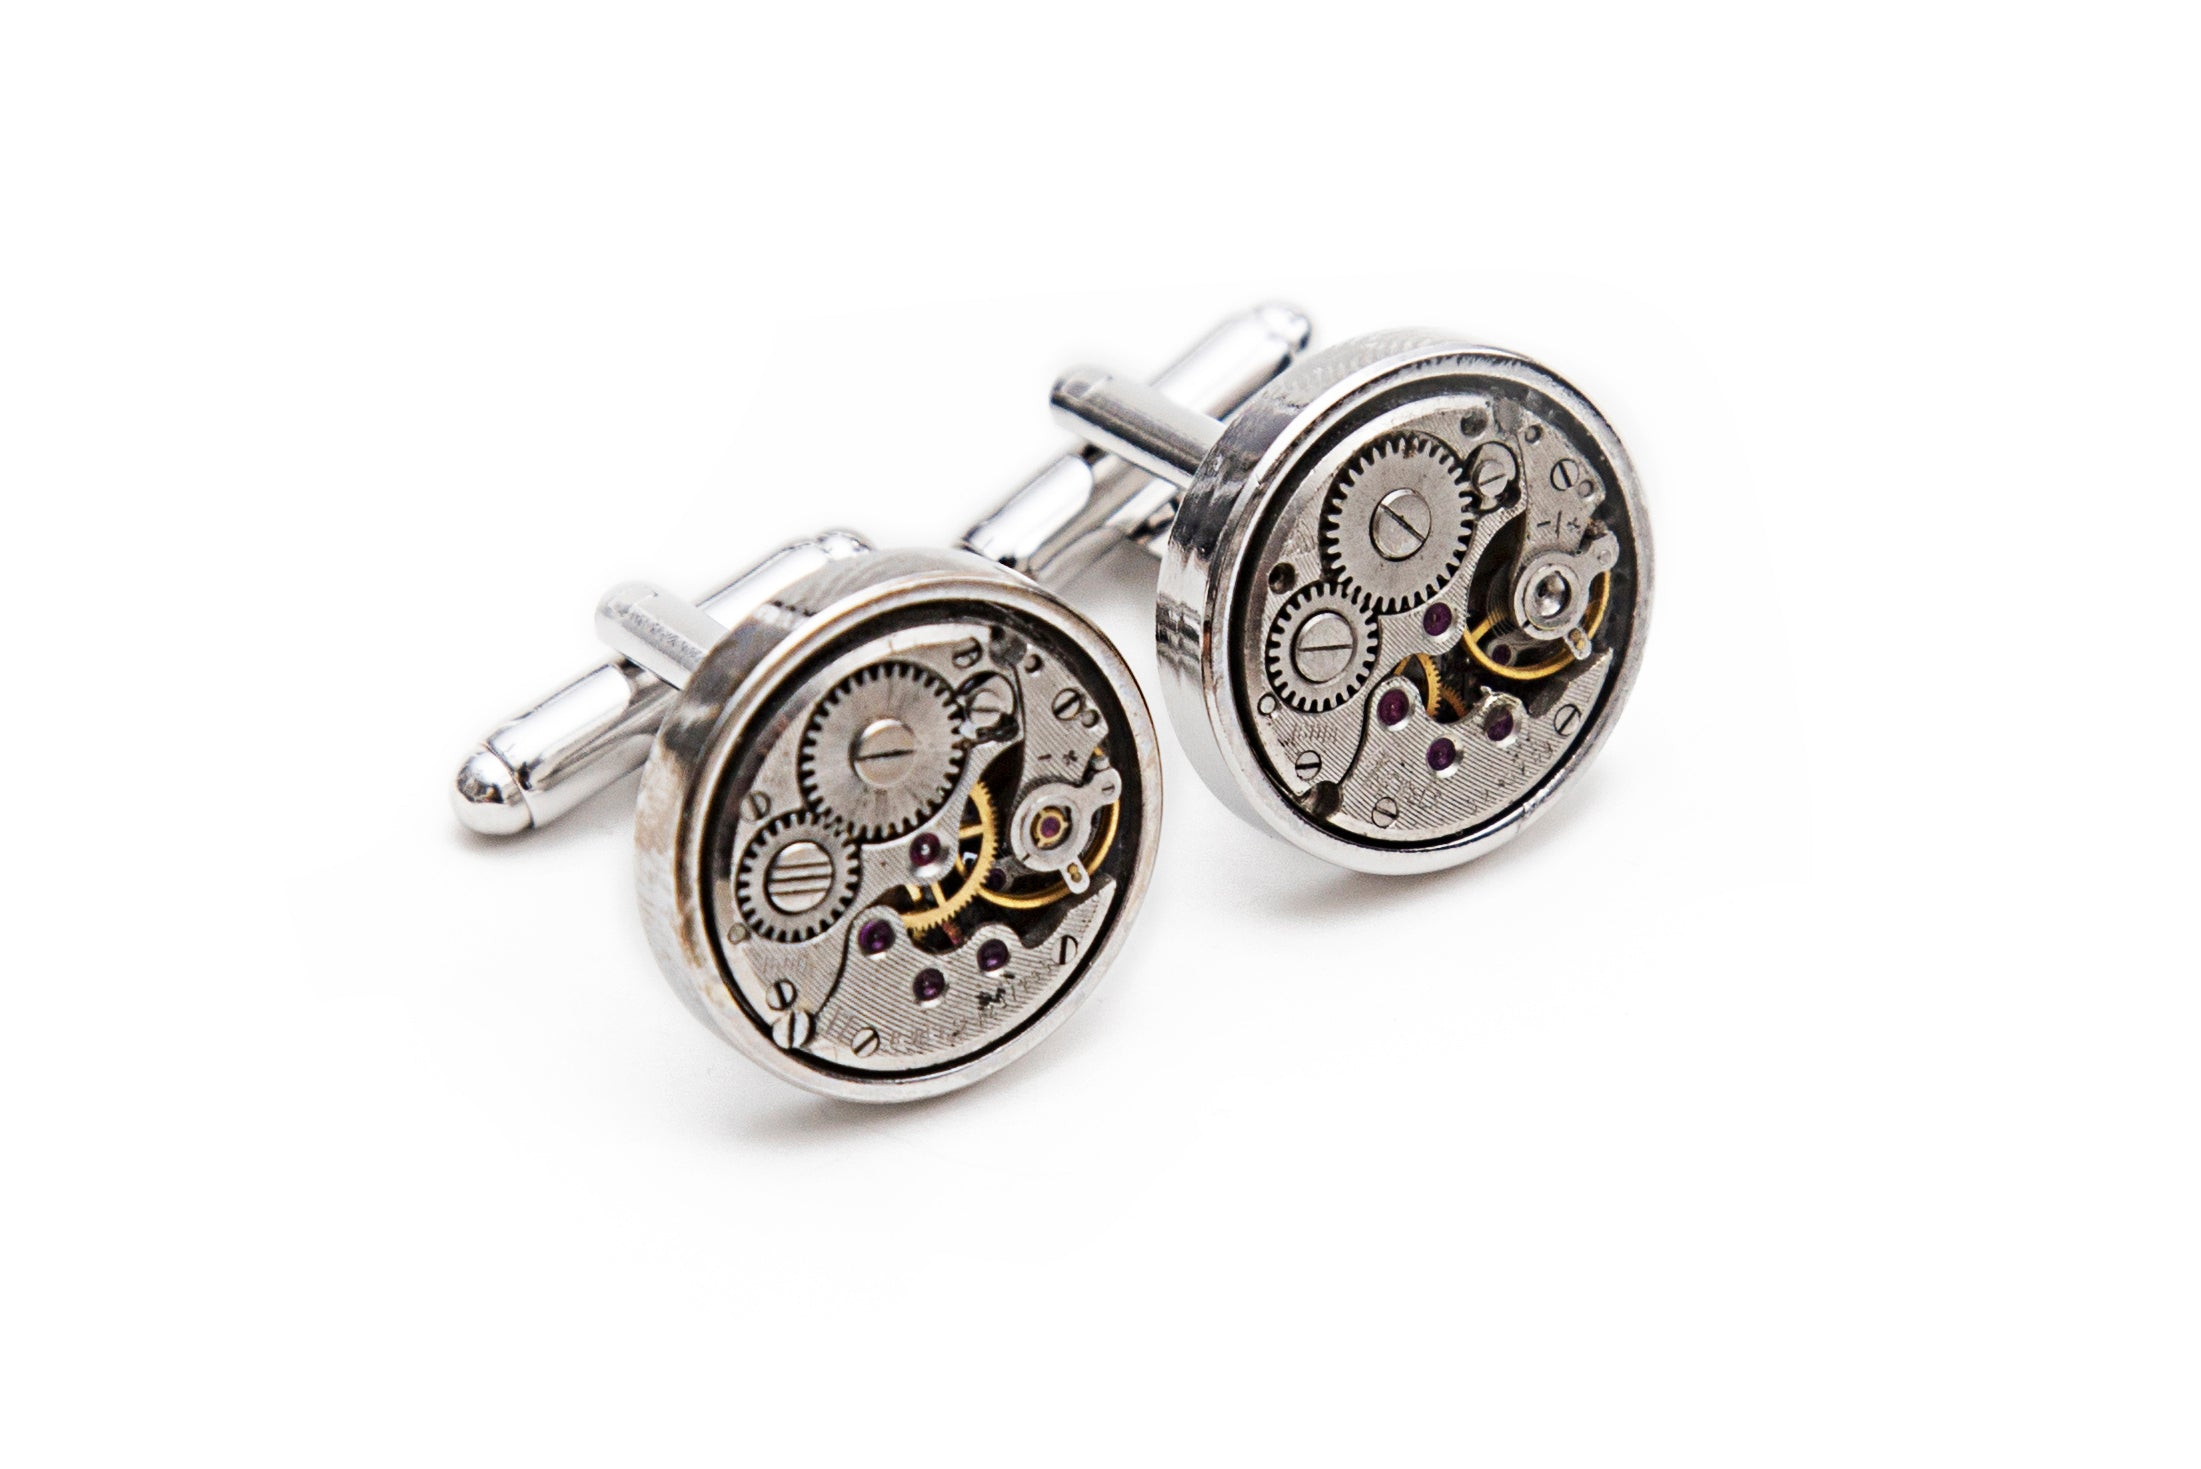 Watch Gear Cuff Links - Round